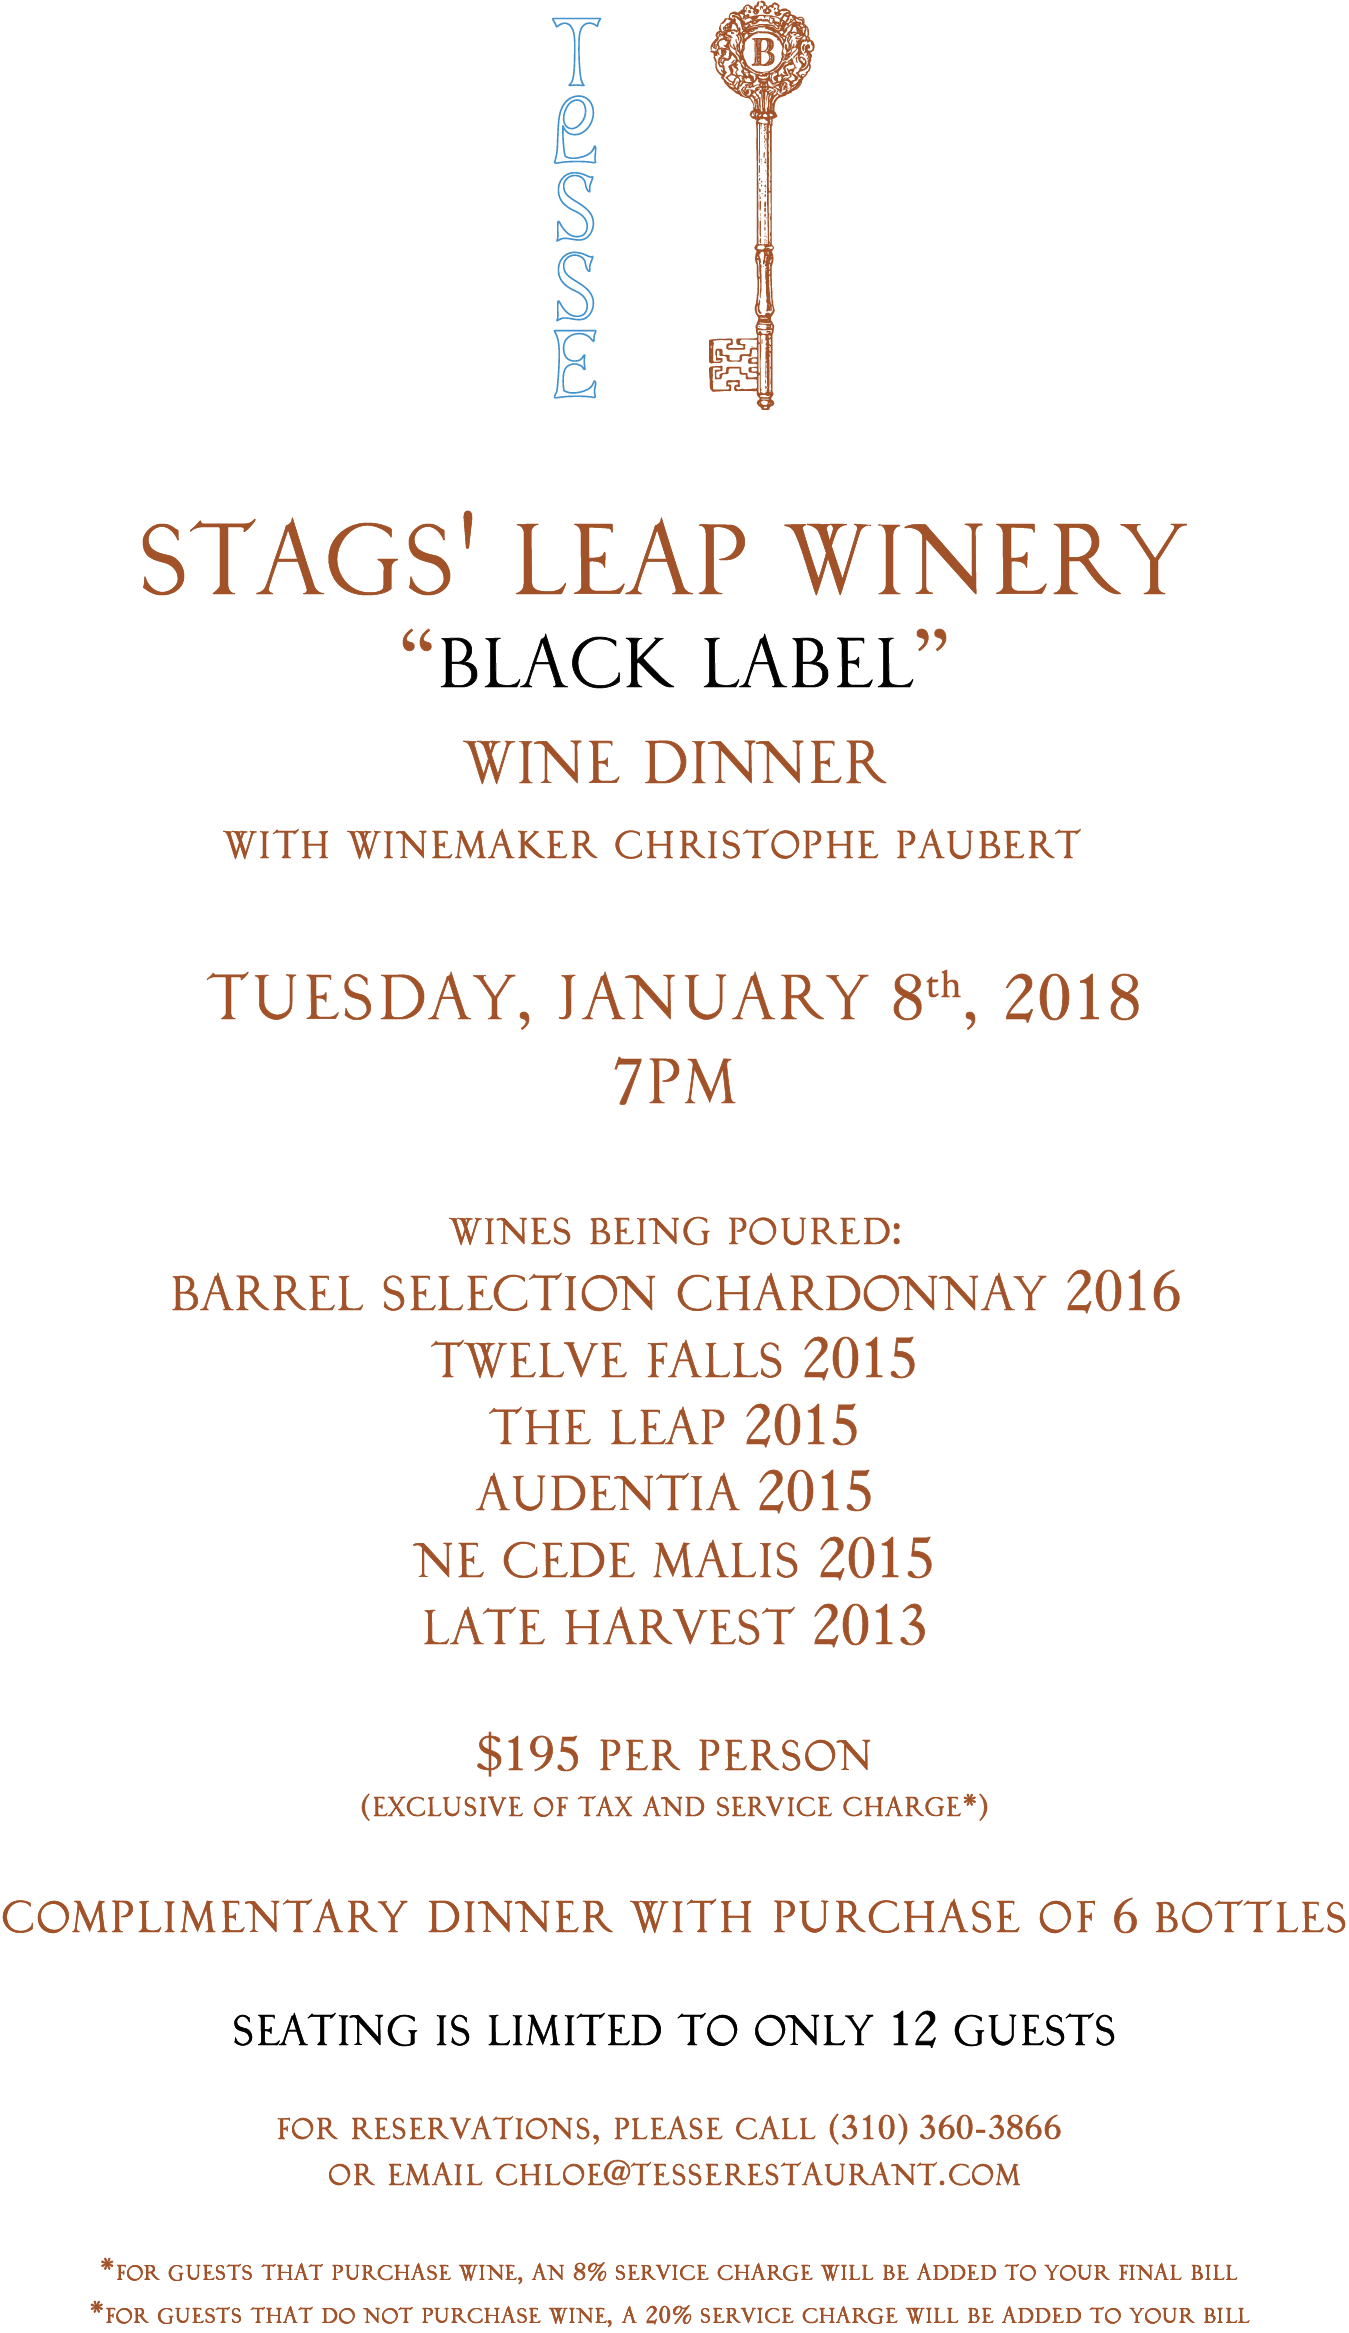 Stags' Leap Wine Dinner Invite.png